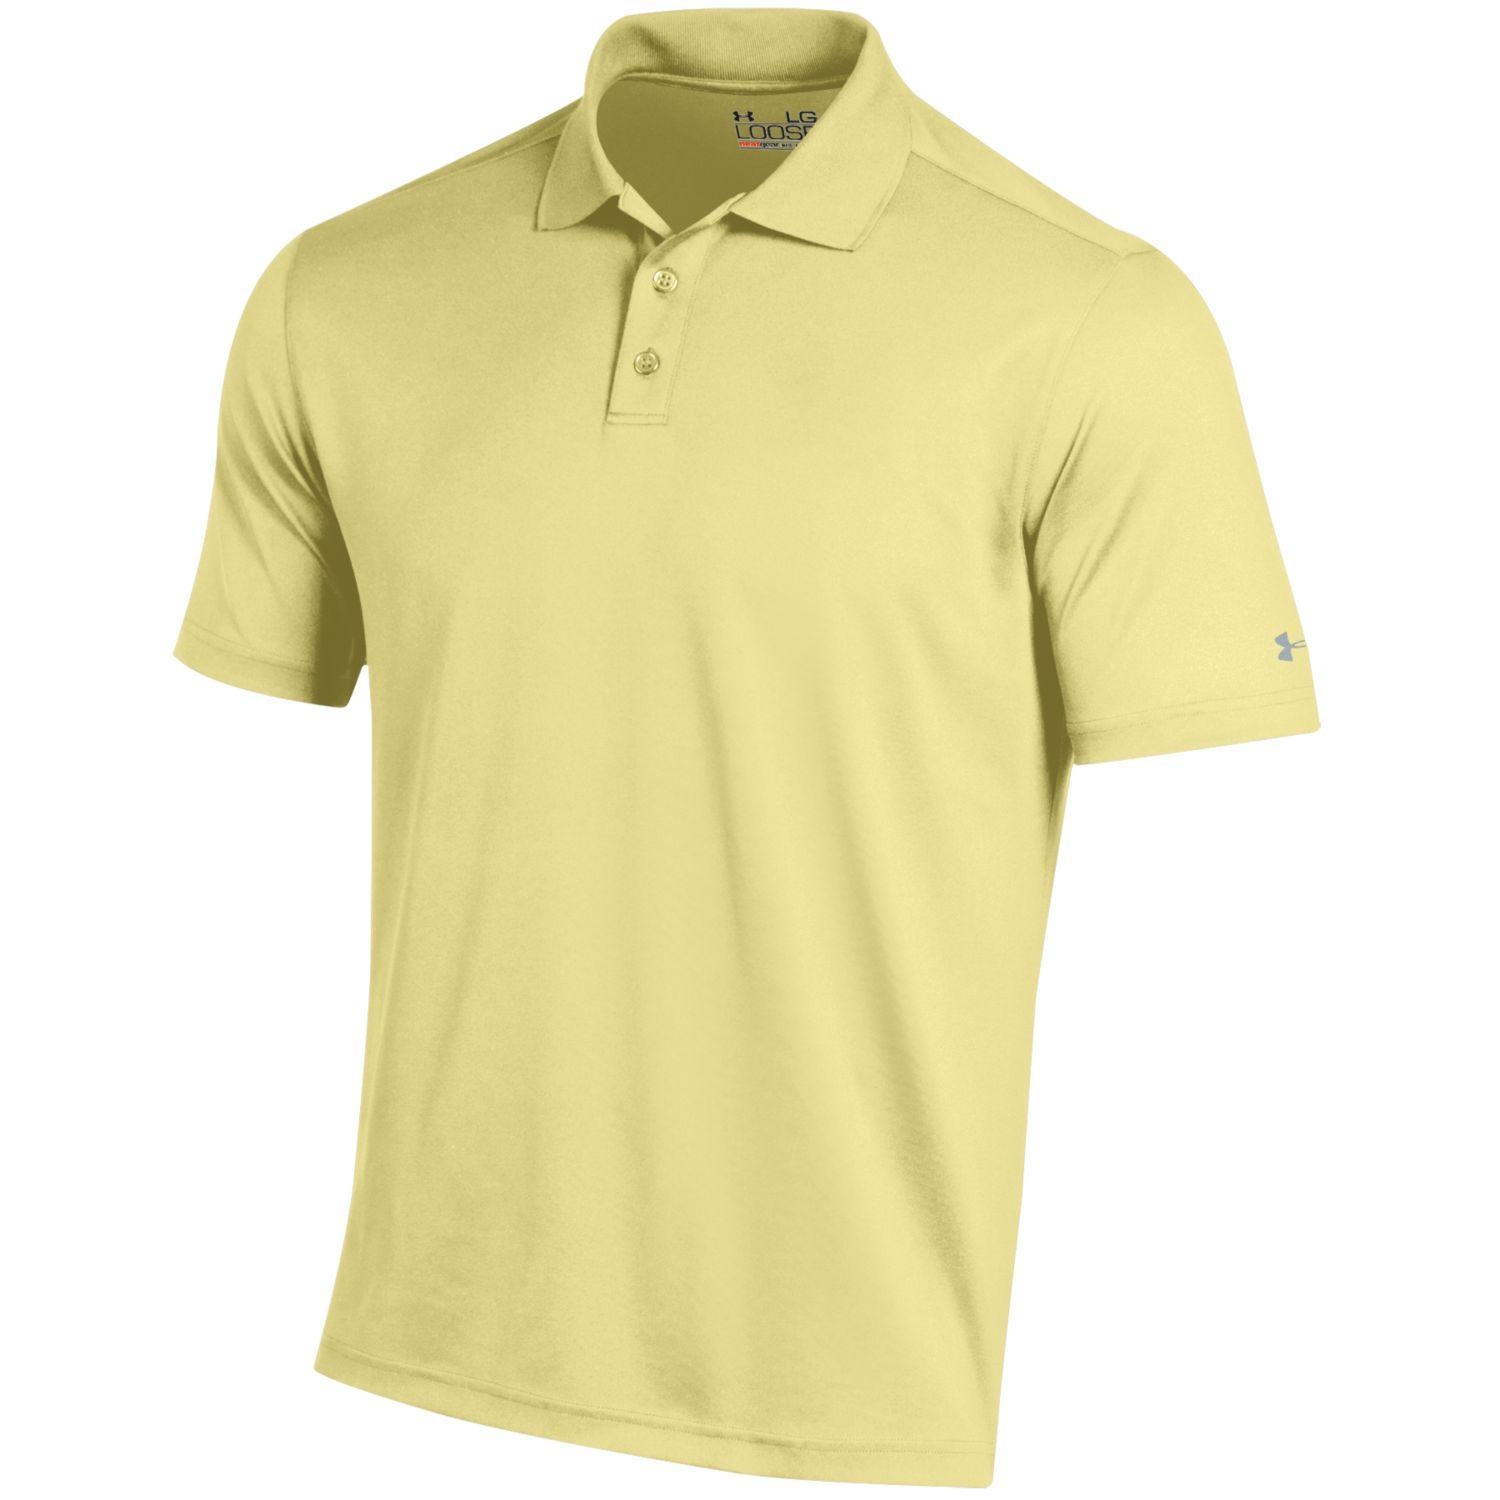 Under Armour Mens 2018 Performance Solid Polo